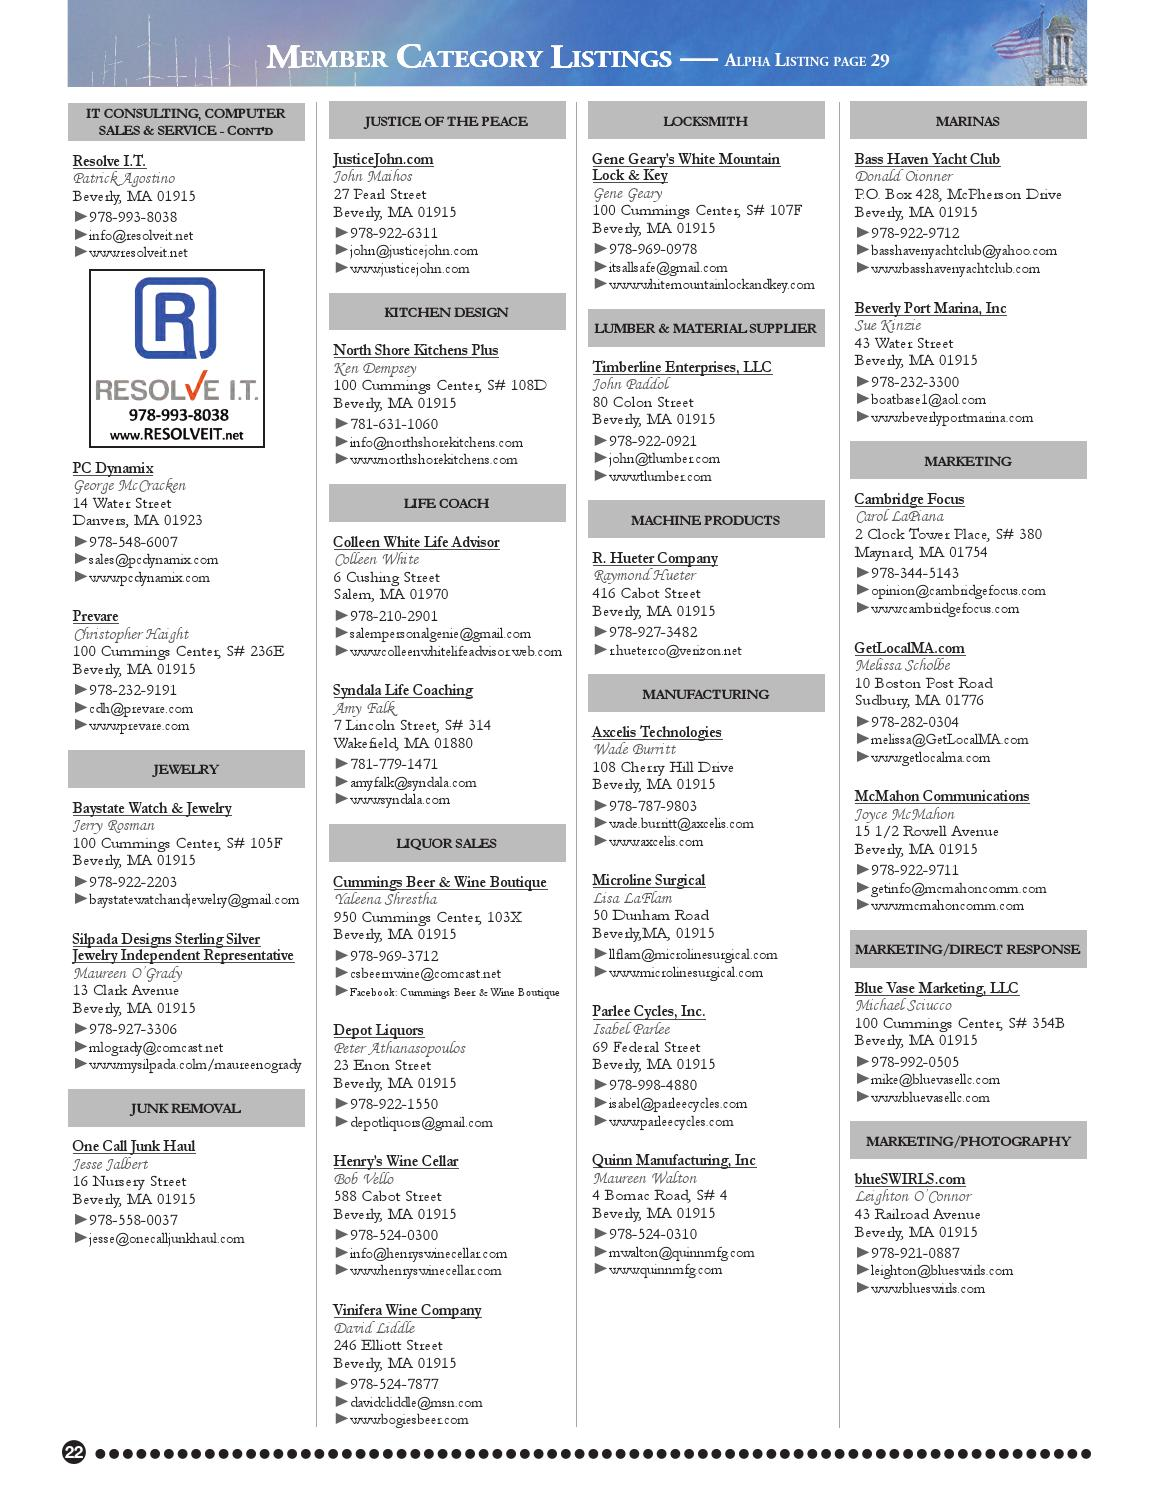 Greater beverly chamber of commerce 2015 business directory by greater beverly chamber of commerce 2015 business directory by john somes issuu floridaeventfo Gallery